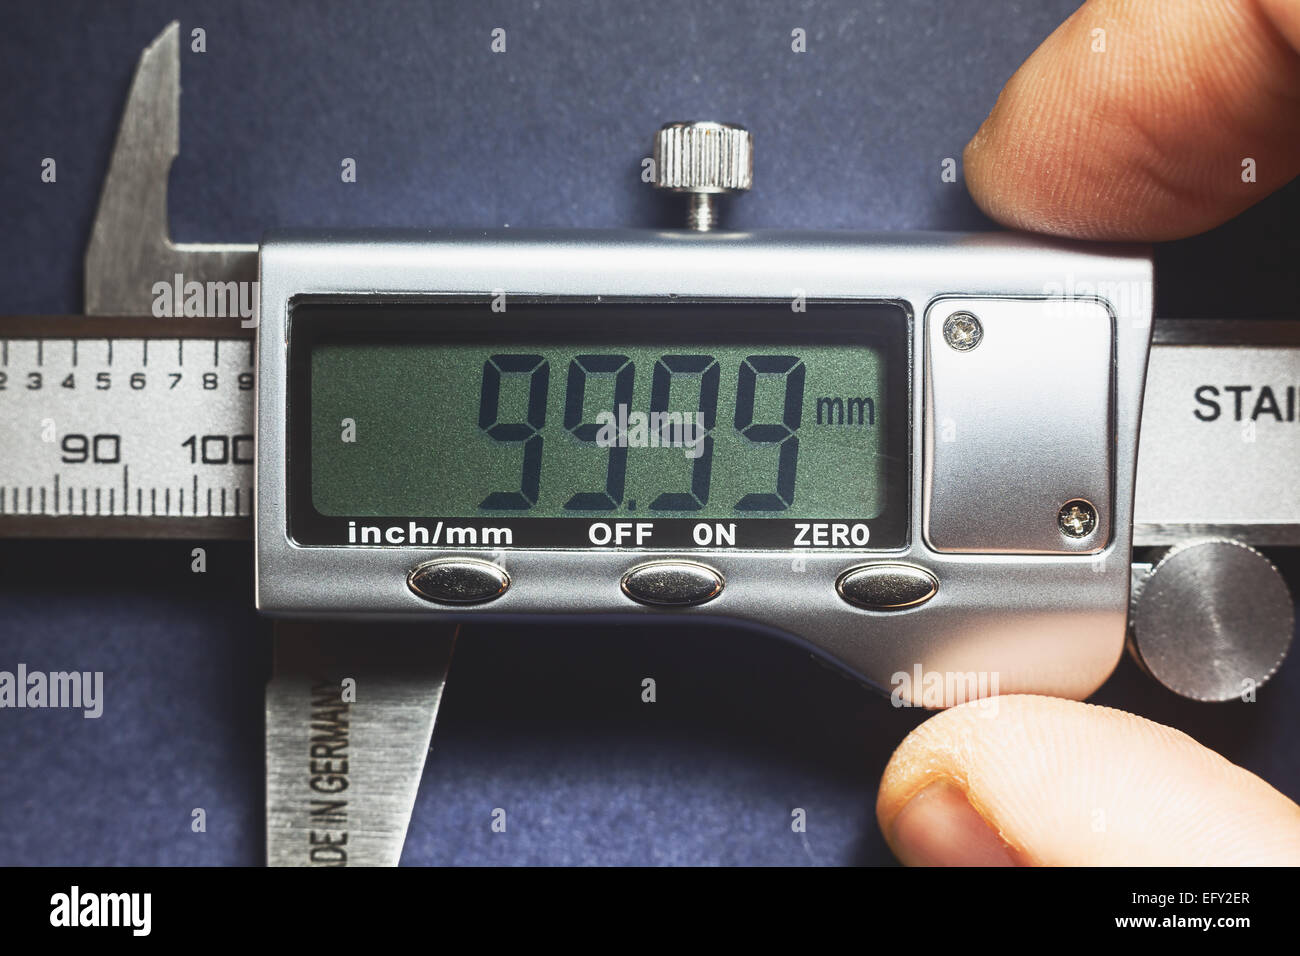 Details of modern measuring tool, digital display showing precise dimension in two decimals. - Stock Image